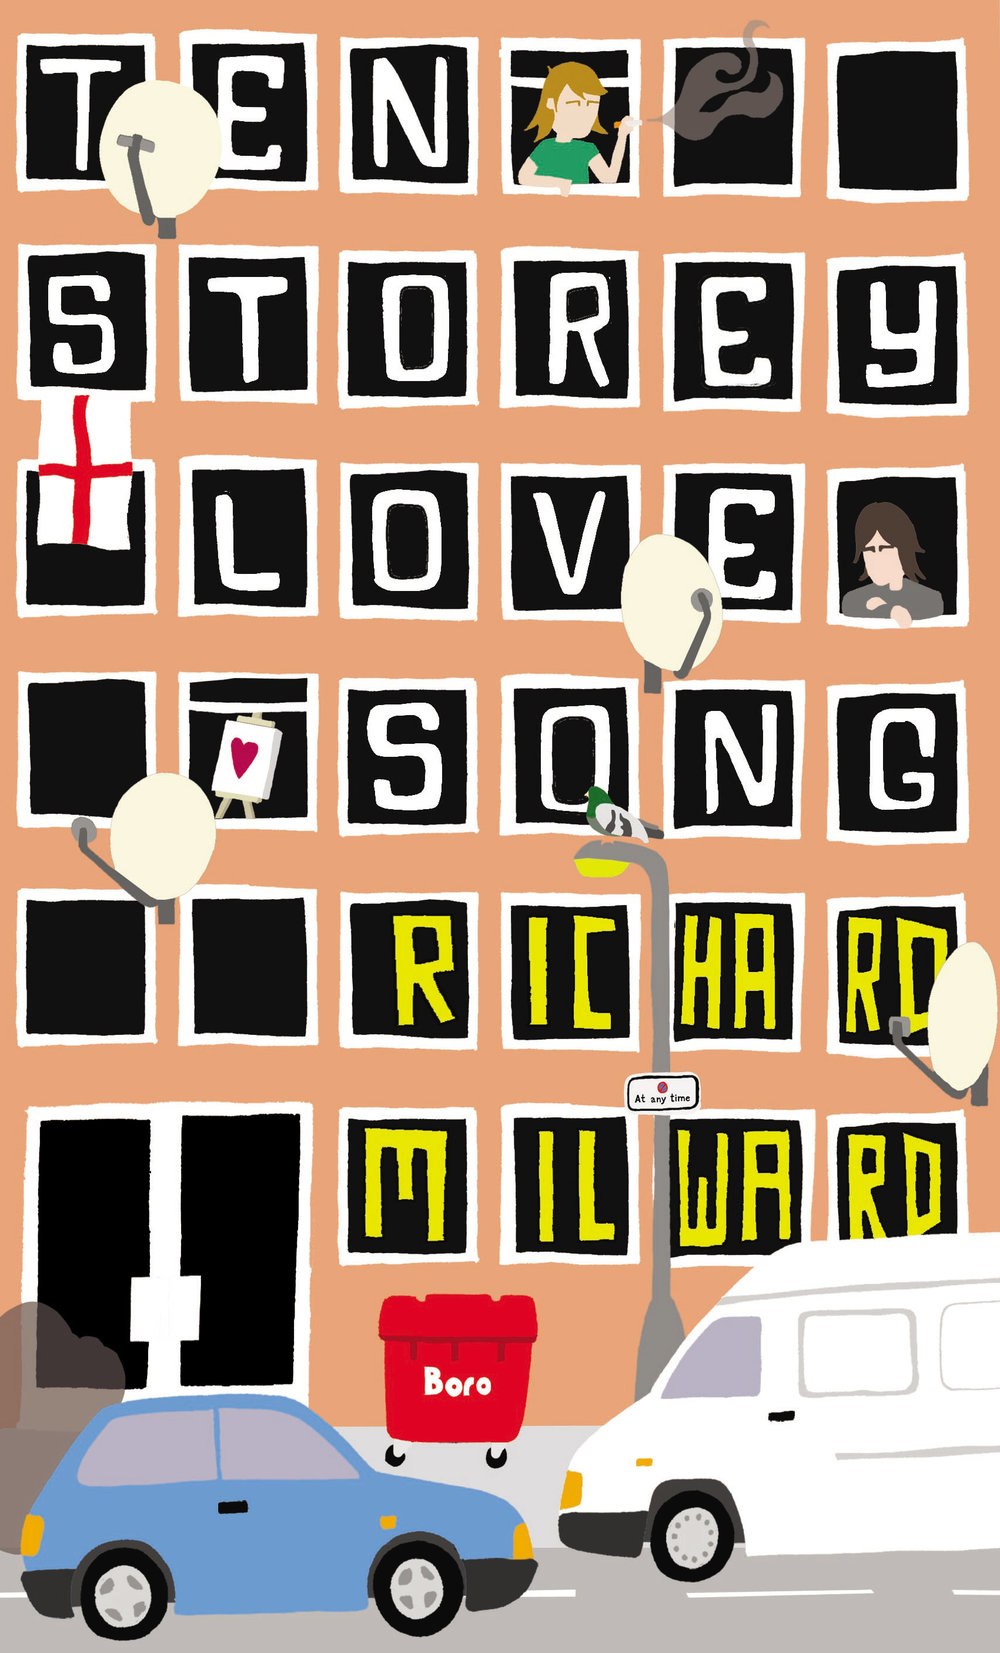 TEN STOREY LOVE SONG (2009, FABER & FABER)   Spanning one dynamite paragraph,  Ten Storey Love Song  follows Bobby the Artist's rise to stardom and horrific drug psychosis, Johnnie's attempts to stop thieving and start pleasing Ellen in bed, and Alan Blunt, a forty-year-old truck driver who spends a worrying amount of time patrolling the grounds of the local primary school. Bobby - the so-called 'love-child of Keith Haring and Jean-Michel Basquiat', holed up in a Middlesbrough tower block - works on his canvases under the influence of pills-on-toast, acid-on-crackers and Francis Bacon. When Bent Lewis, a famous art dealer and mover-shaker from that London appears, Bobby and friends are sent on a sweaty adventure of self-discovery, hedonism and violence involving a 2.5cm-head curved claw hammer. A love song to a loveless Teesside,  Ten Storey Love Song  is a ferocious slab of concrete prose peppered with beauty and delivered with glorious abandon.